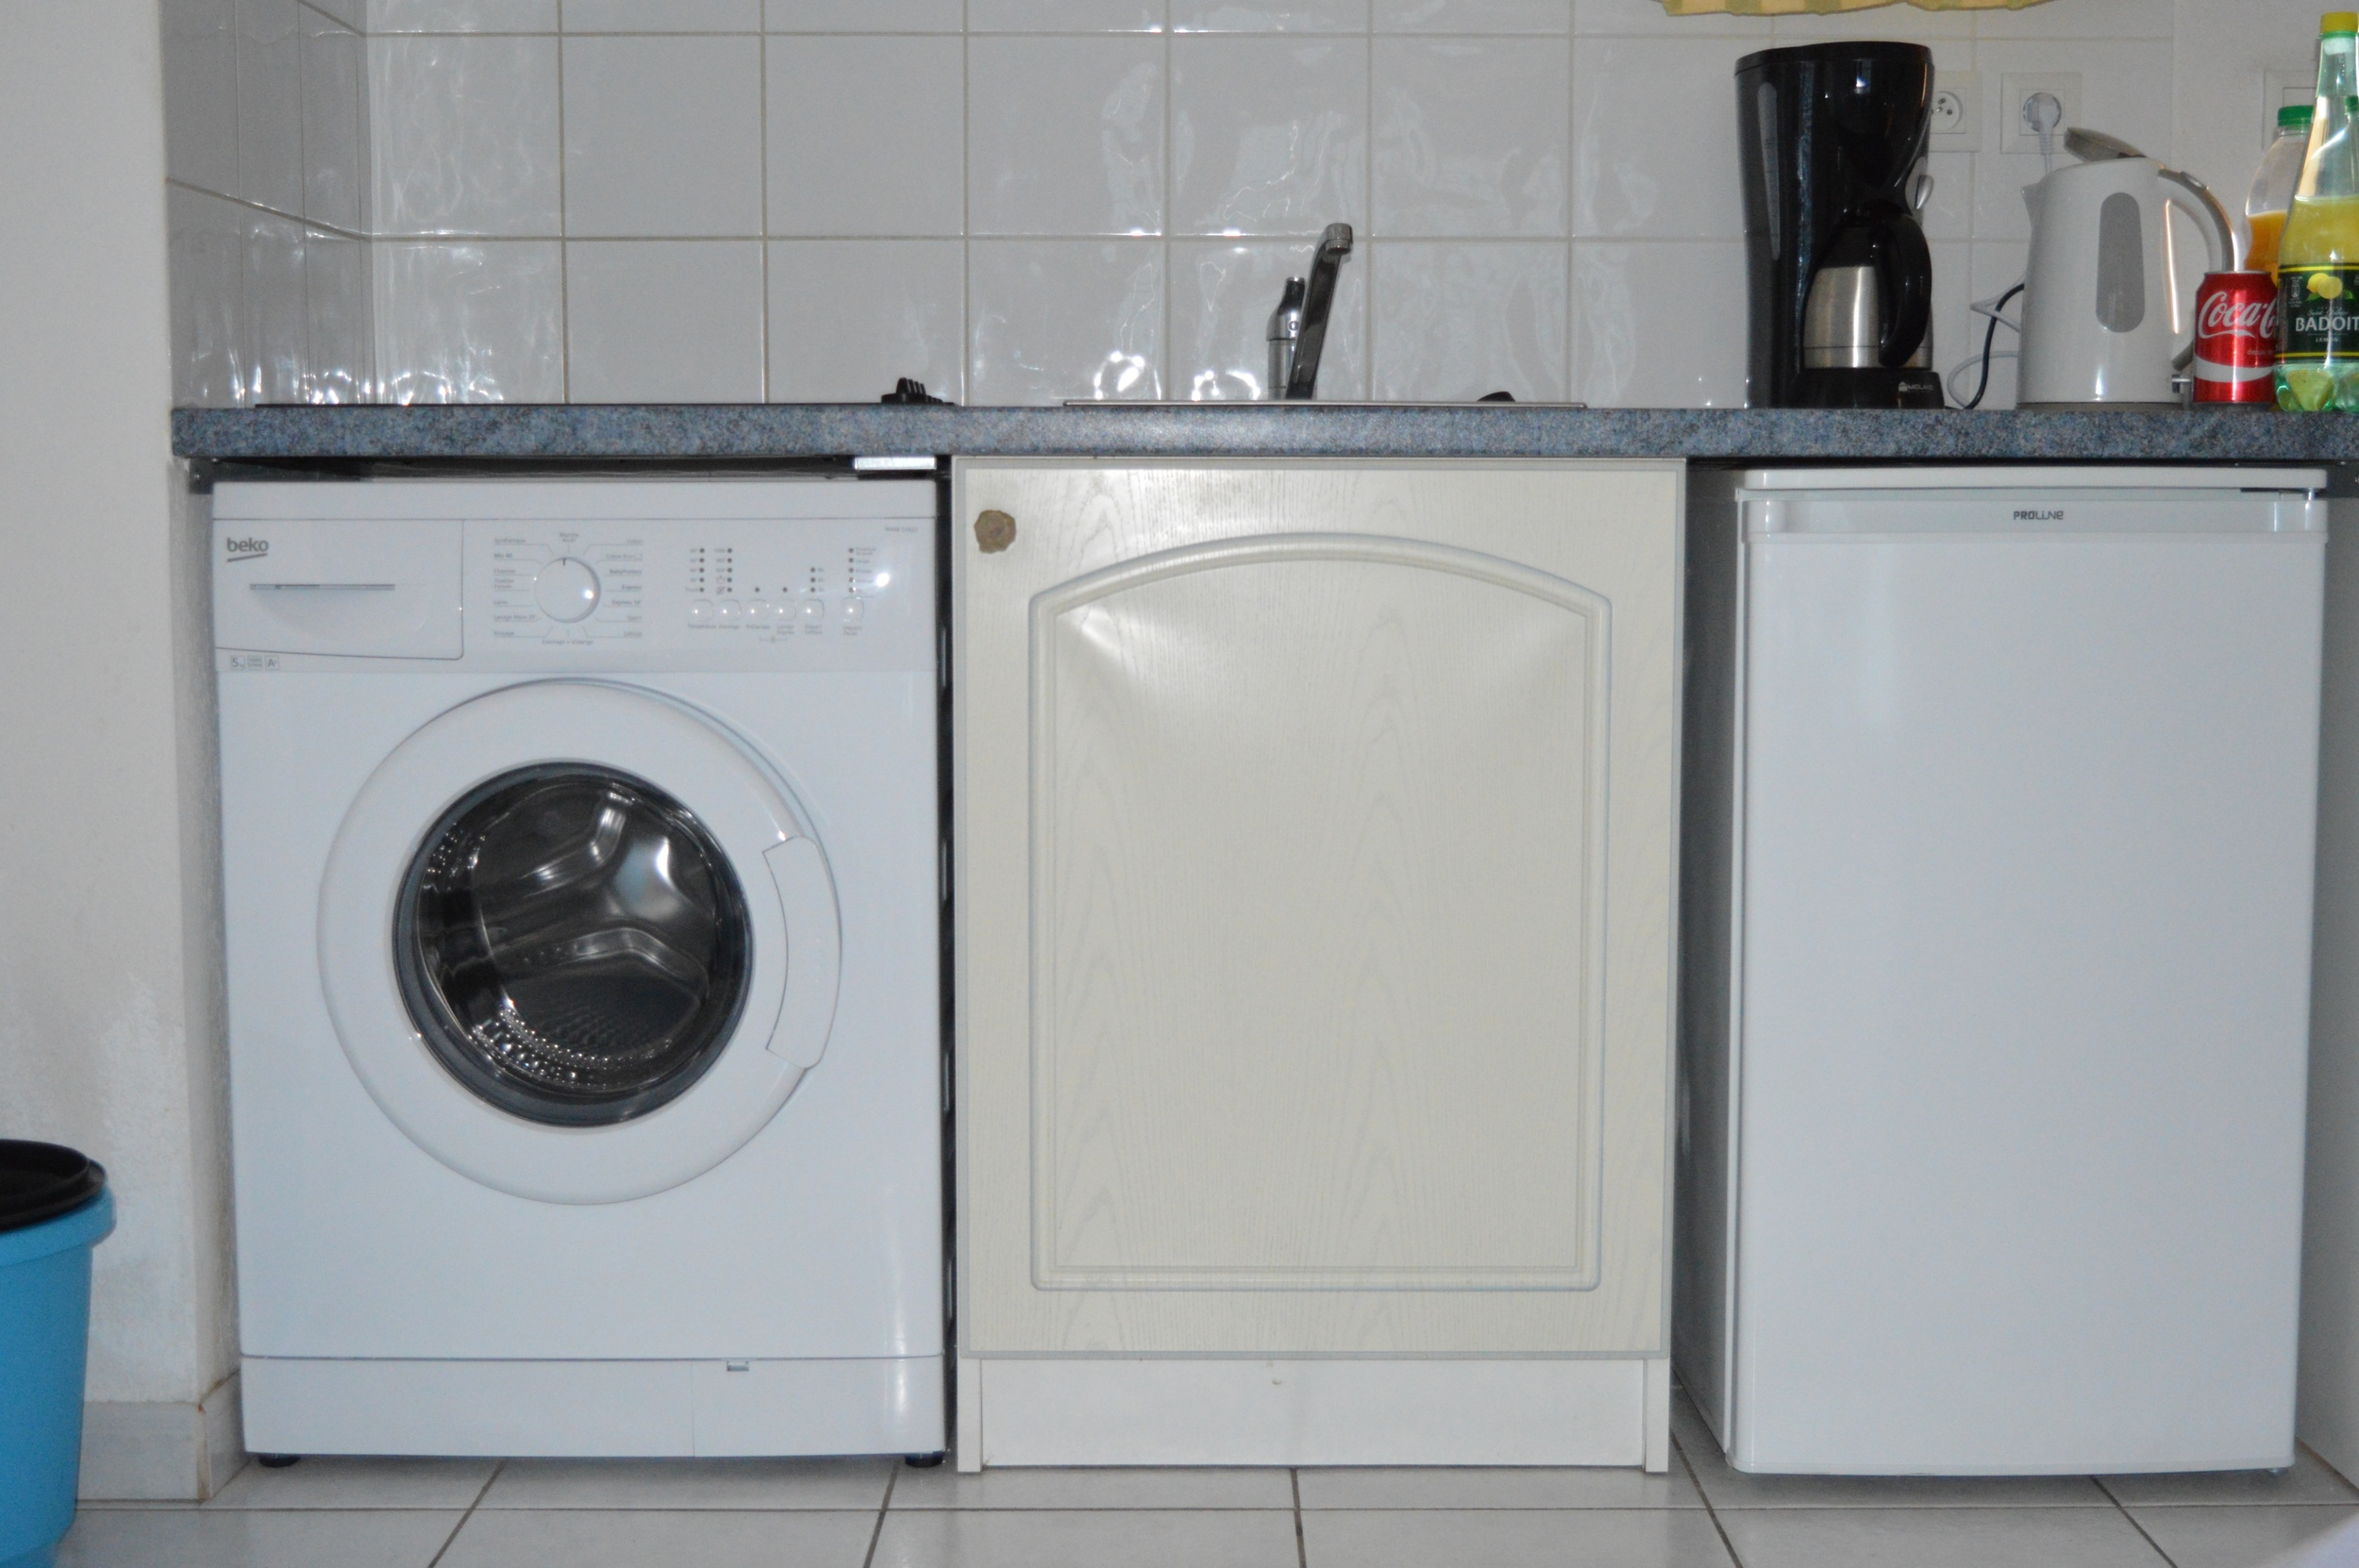 New Washing Machine!!!